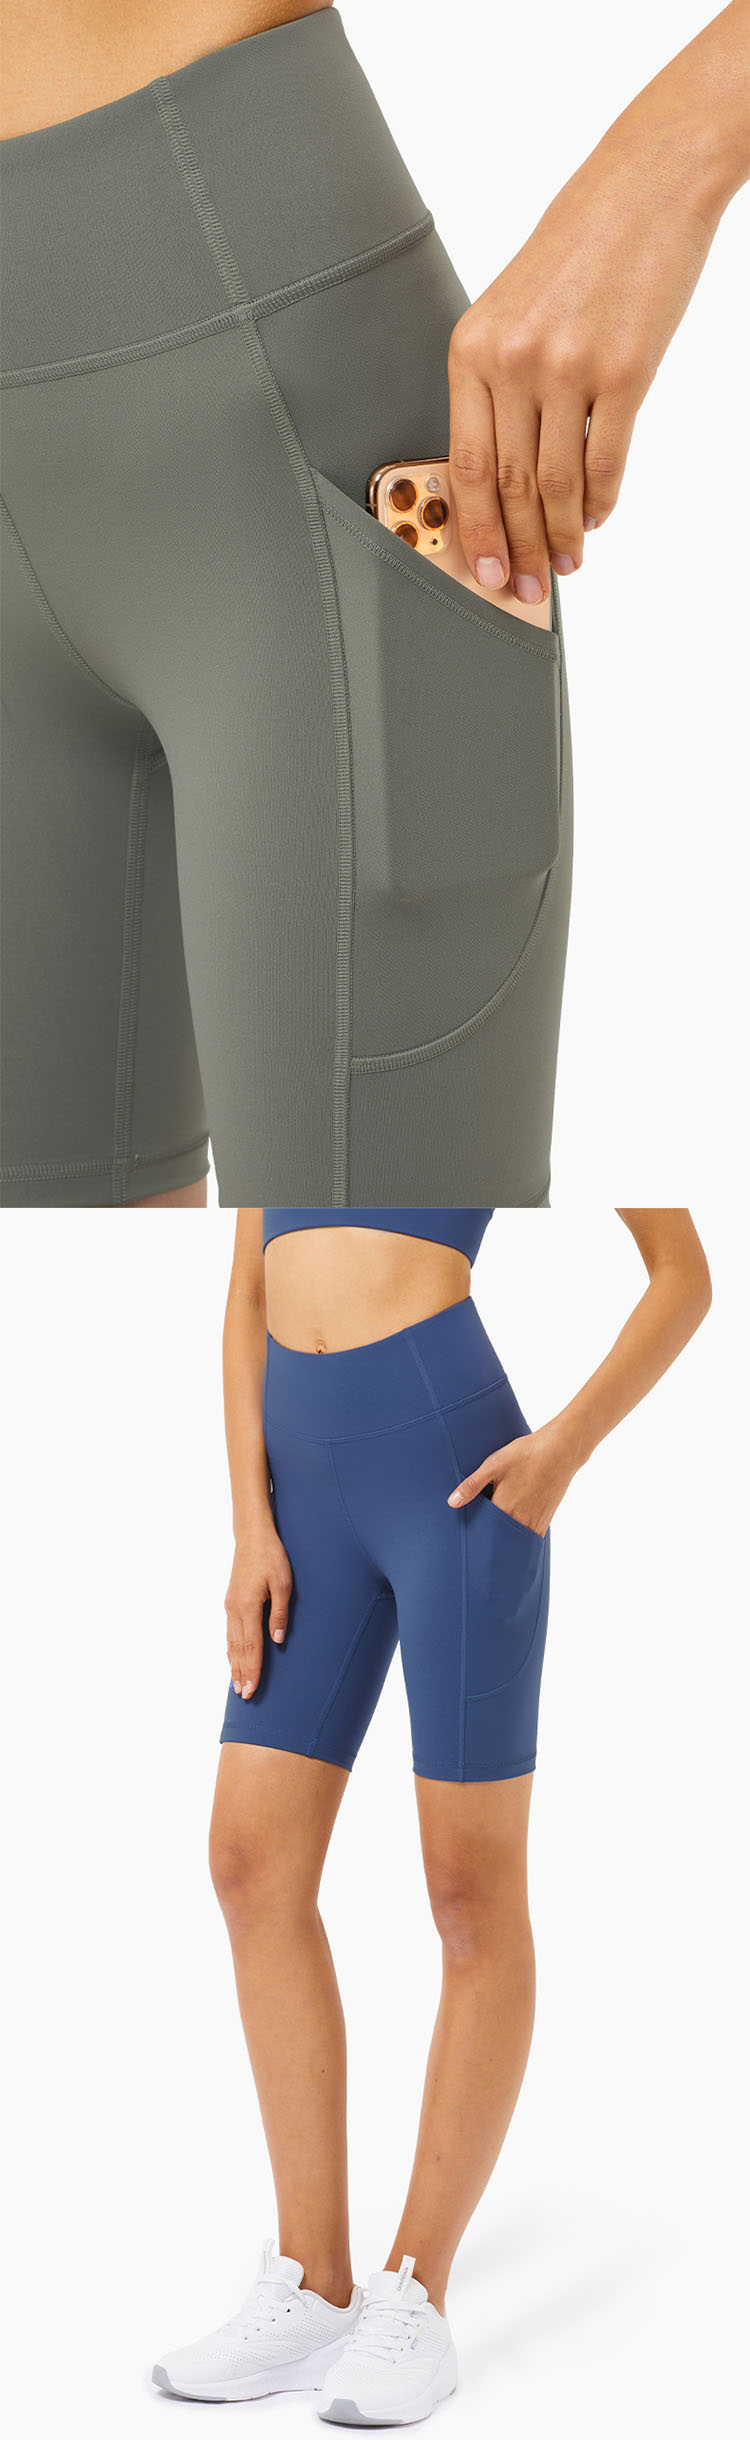 Suitable for high-intensity exercise, provide excellent support, moisture absorption and breathability.